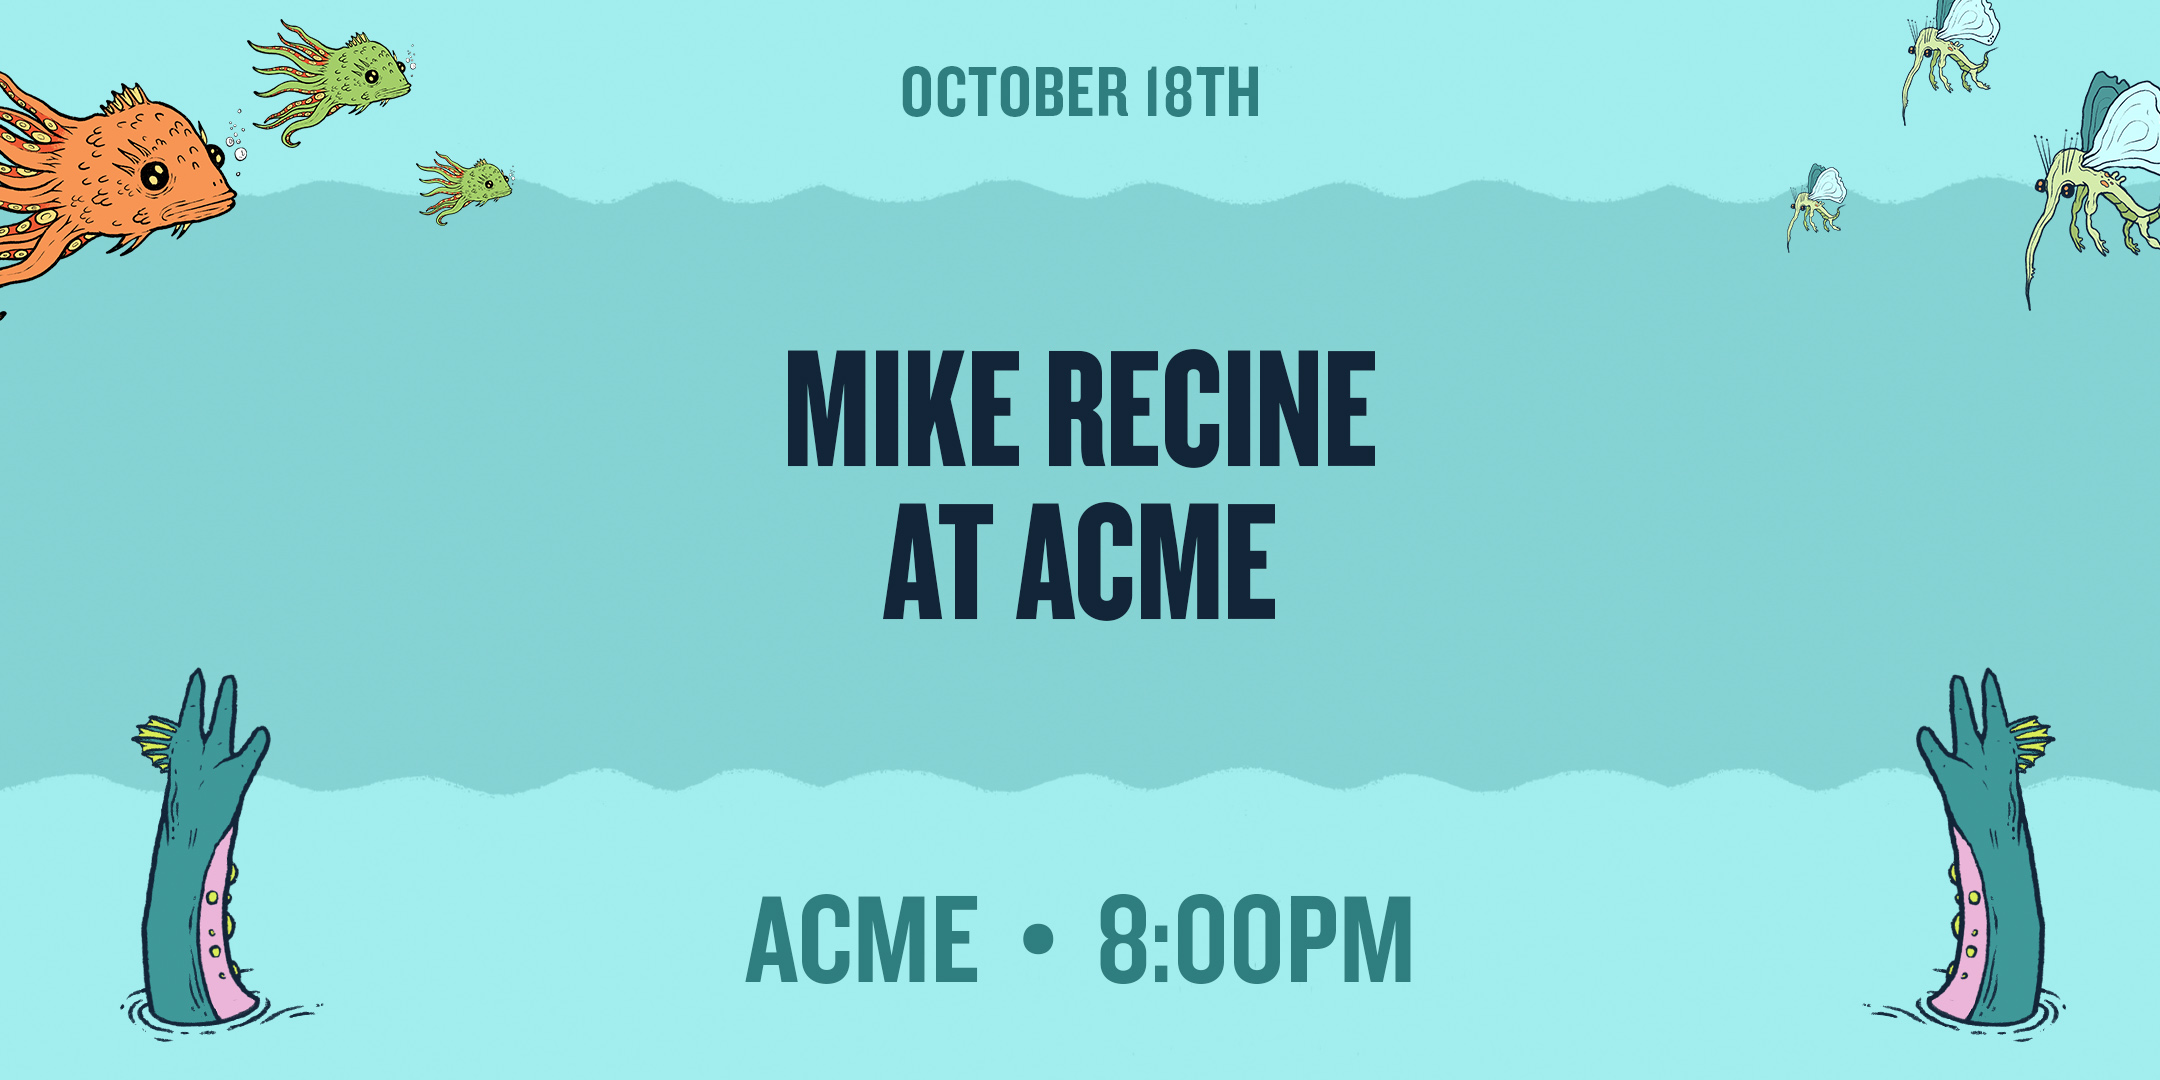 OCT18-Mike Recine at Acme.jpg